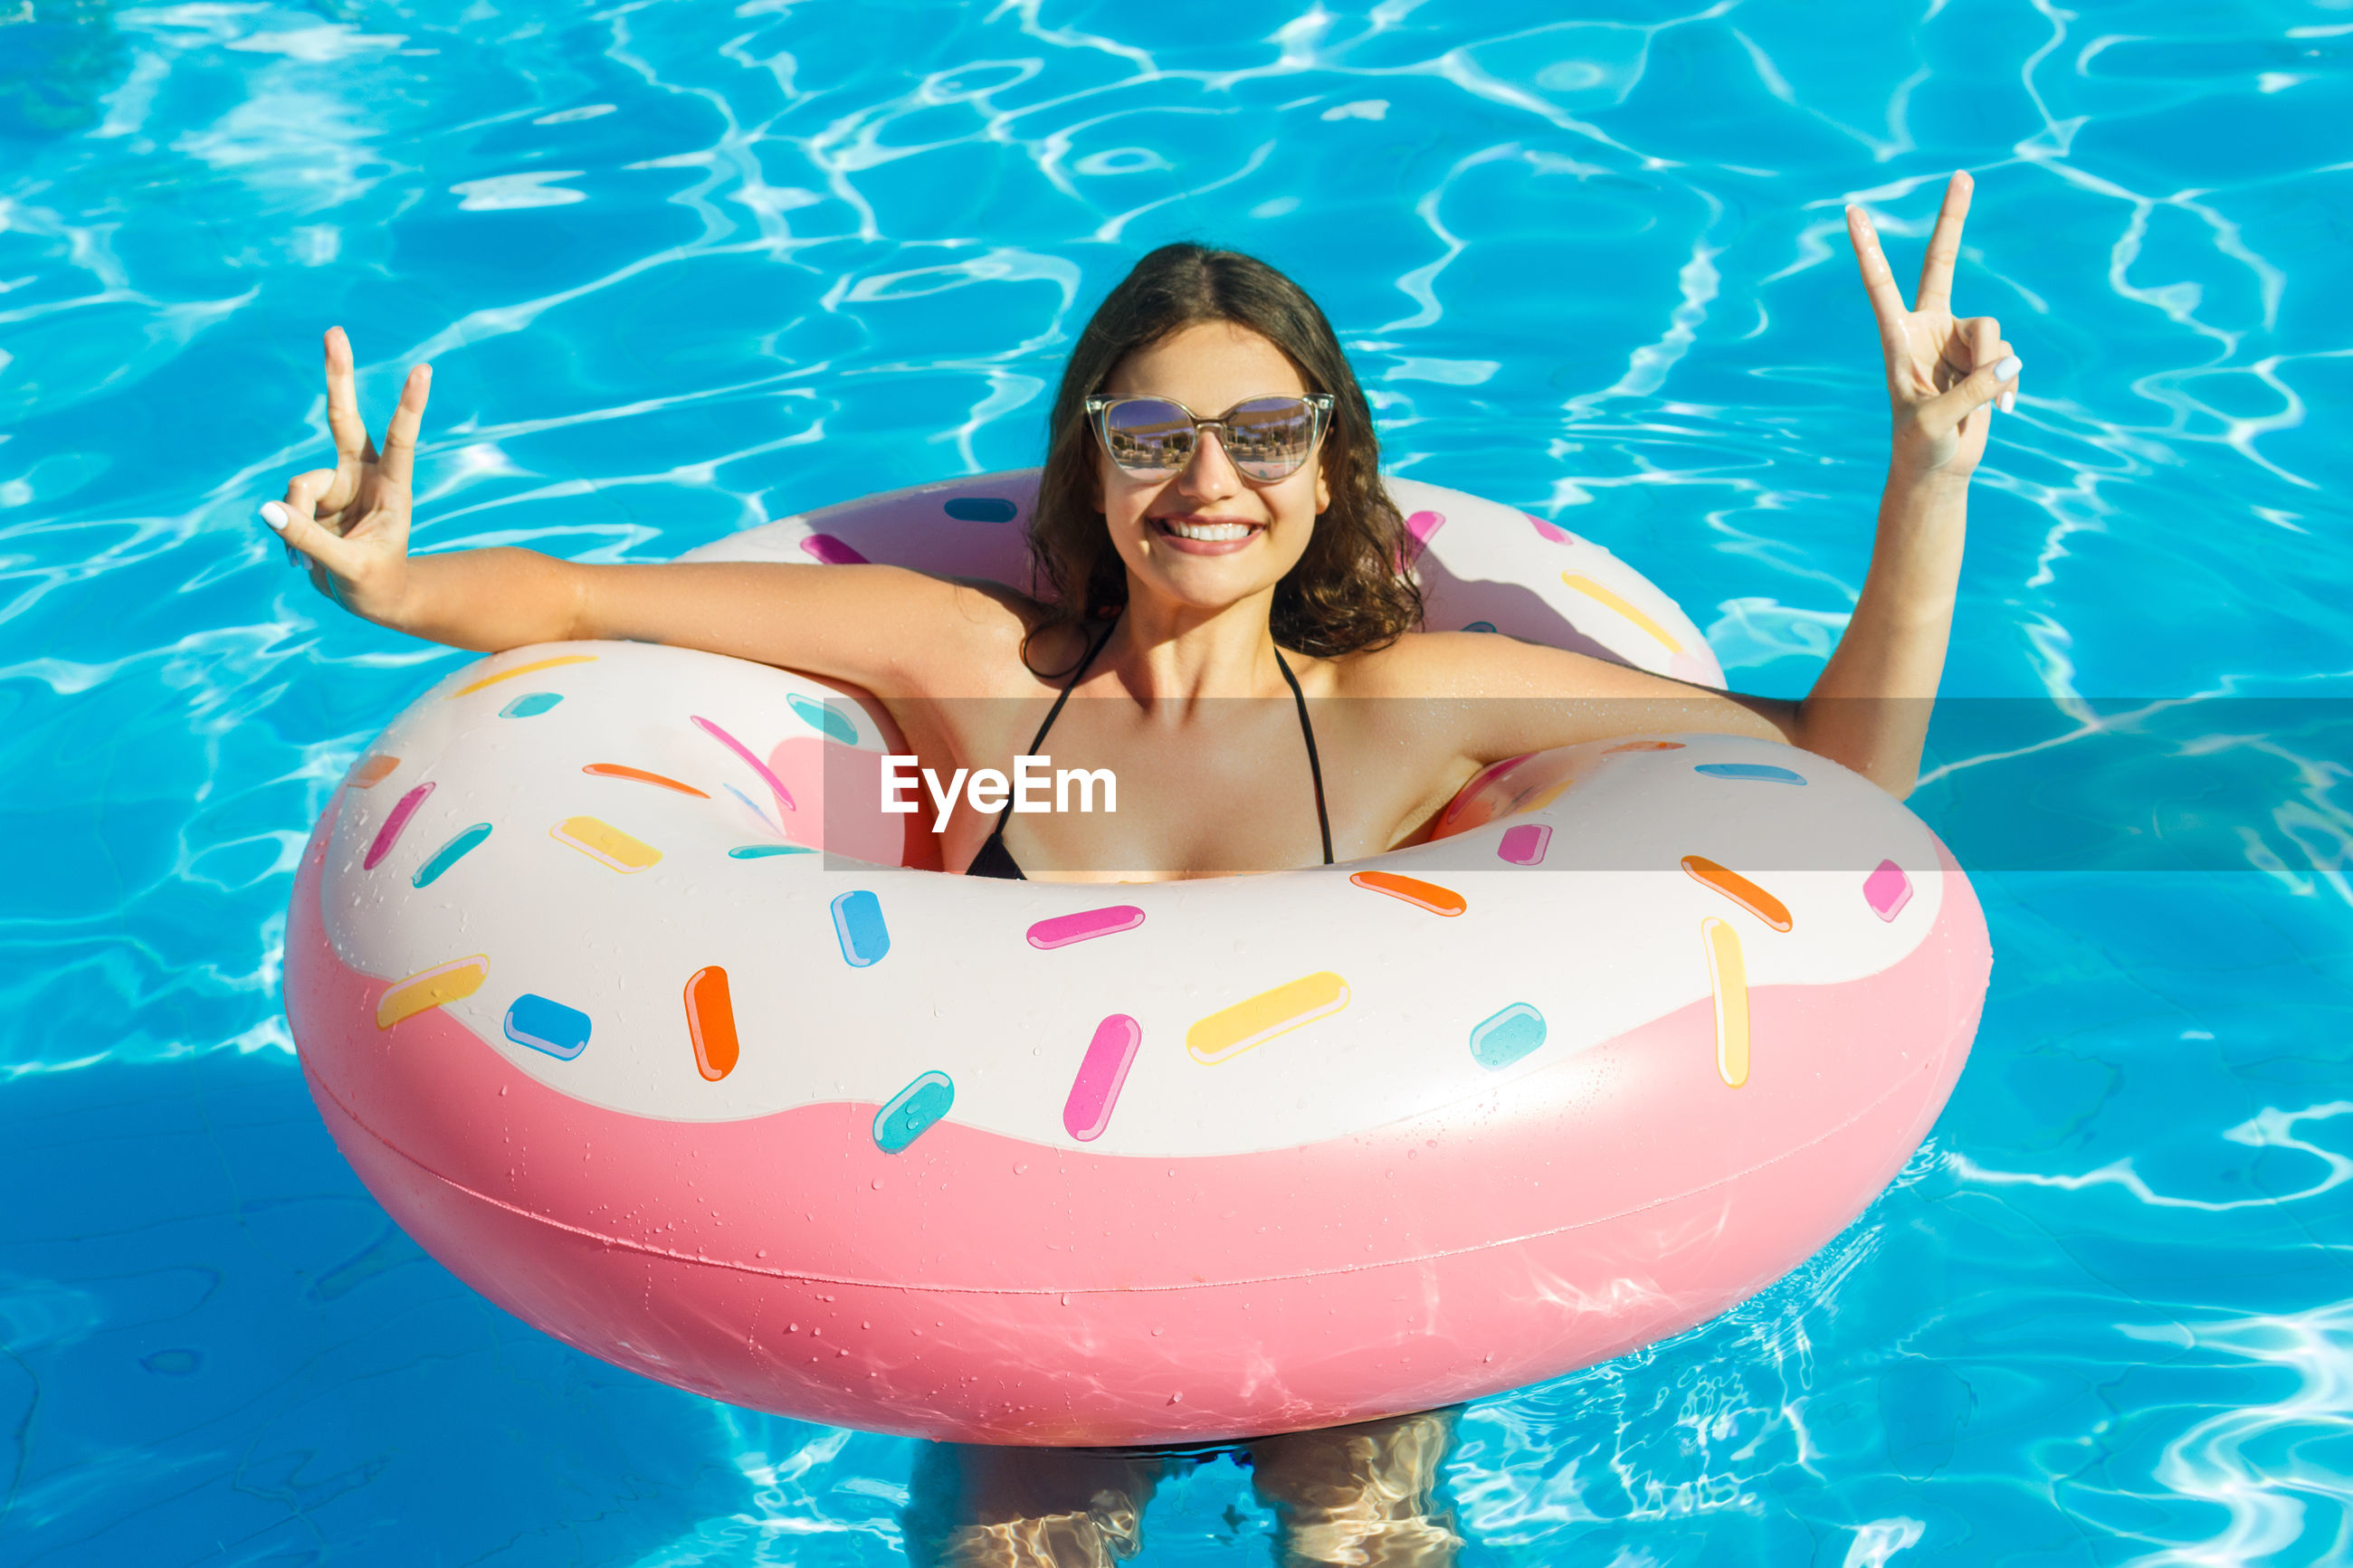 Smiling young woman enjoying in swimming pool with inflatable ring during summer